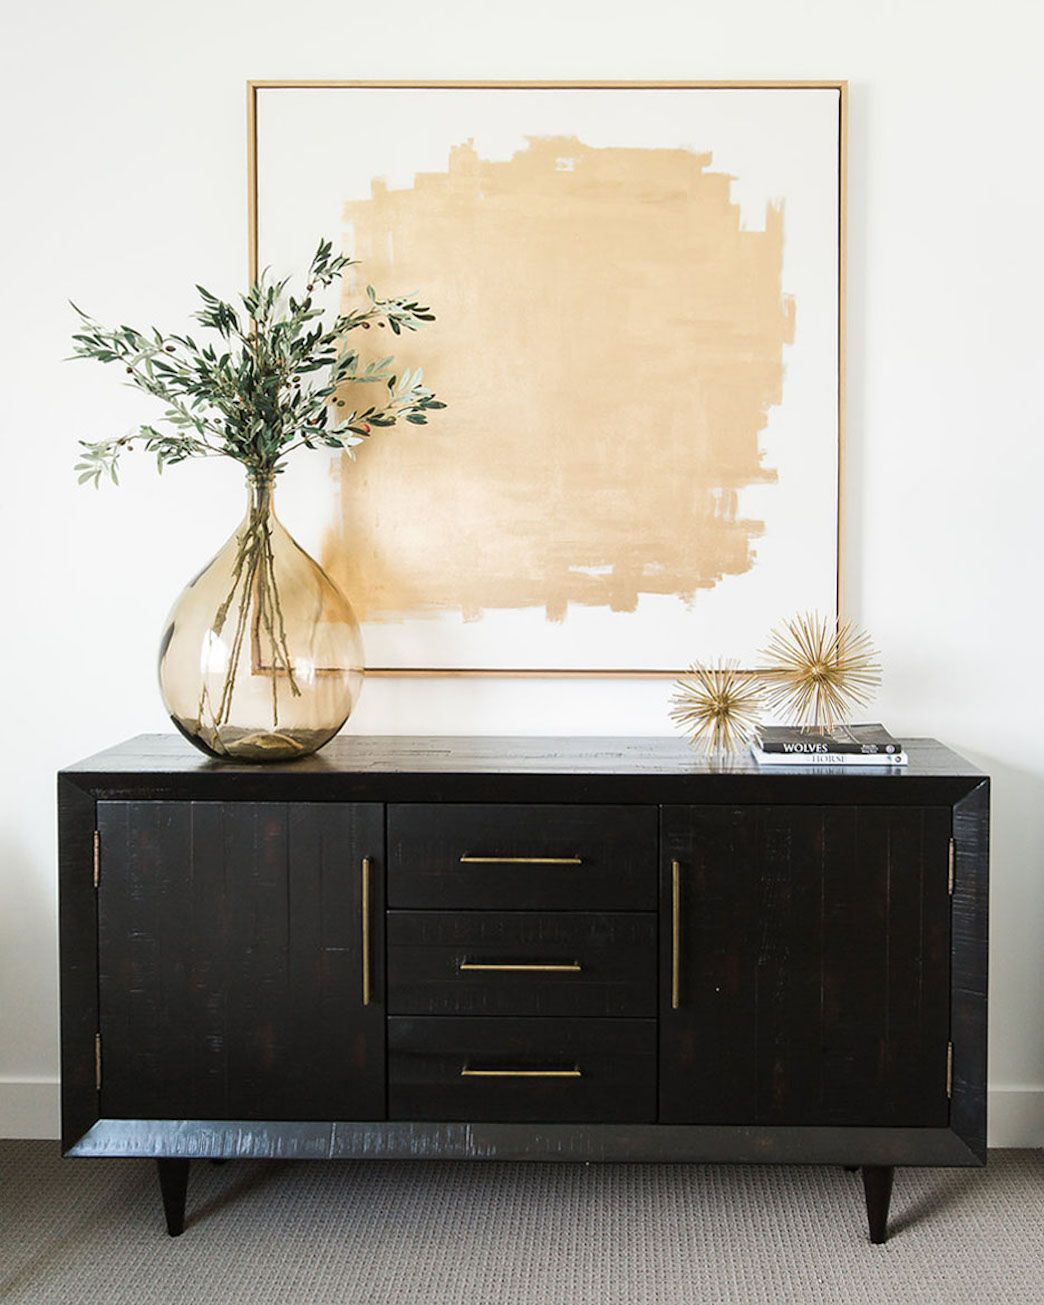 15 Compelling Contemporary Exterior Designs Of Luxury Homes You Ll Love: Credenza Decor, Gold Bedroom, Home Deco